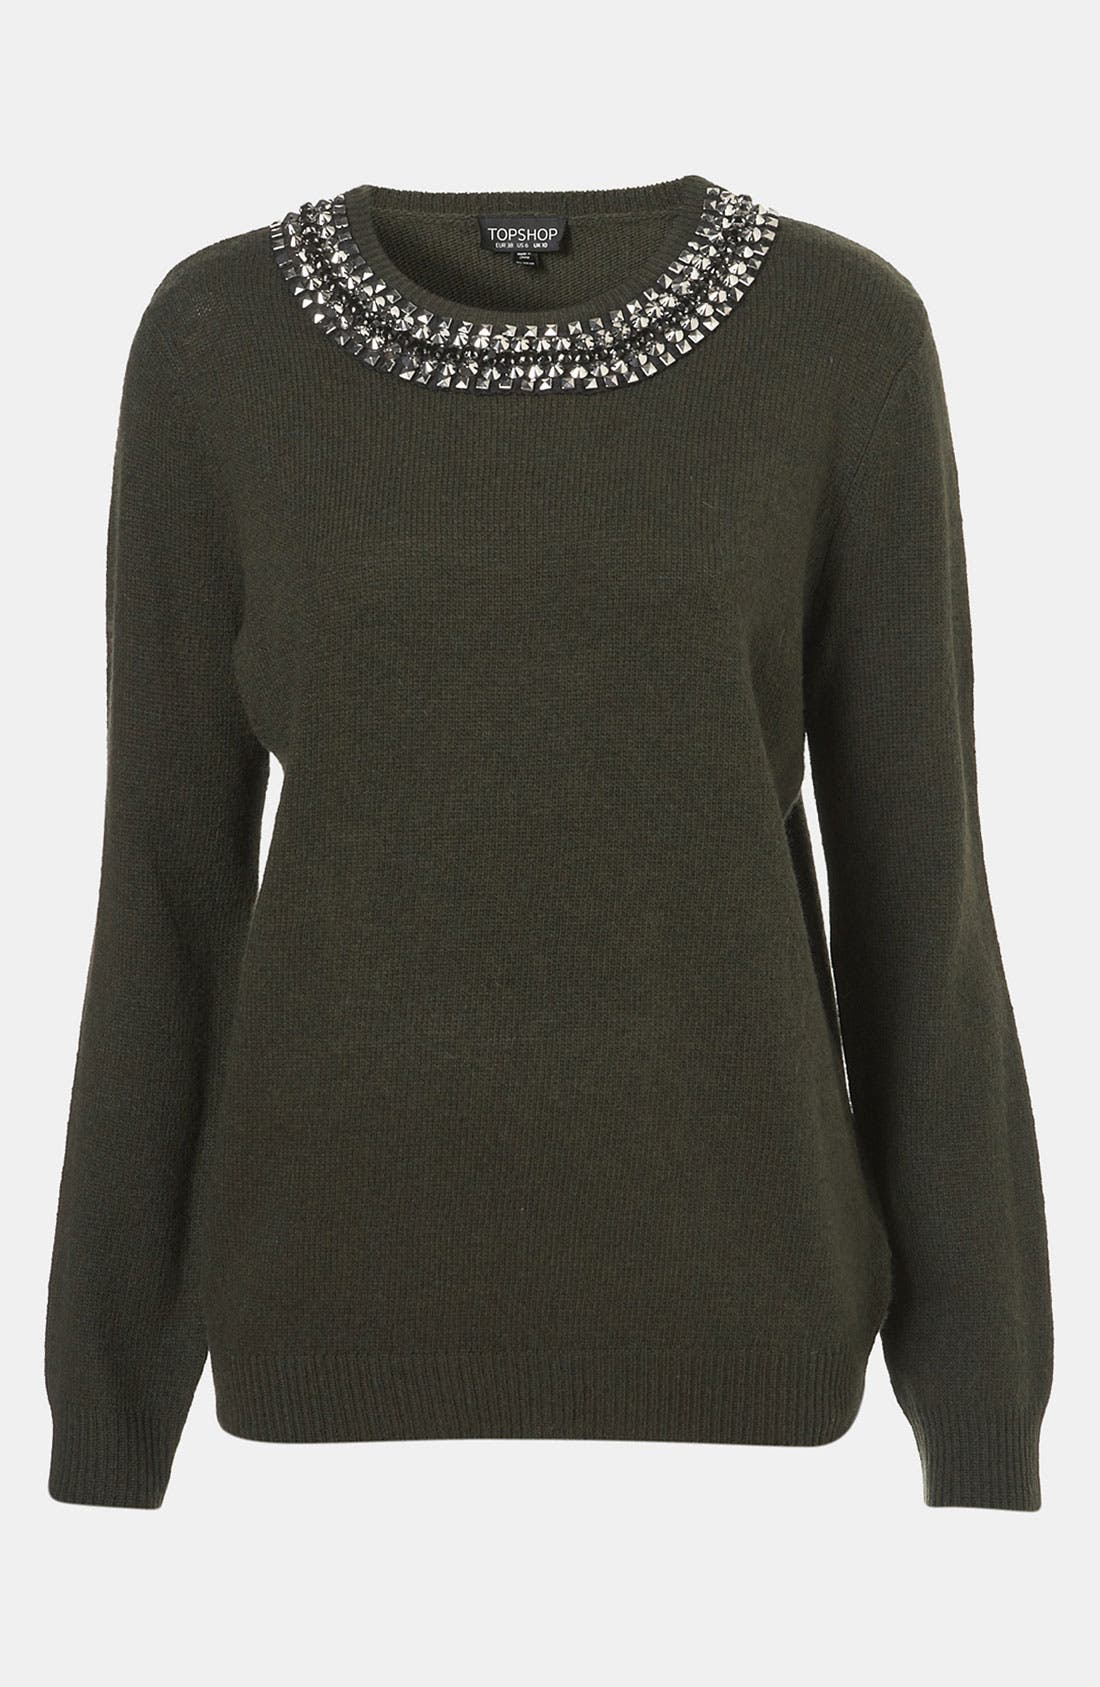 Main Image - Topshop Rhinestone Trim Sweater